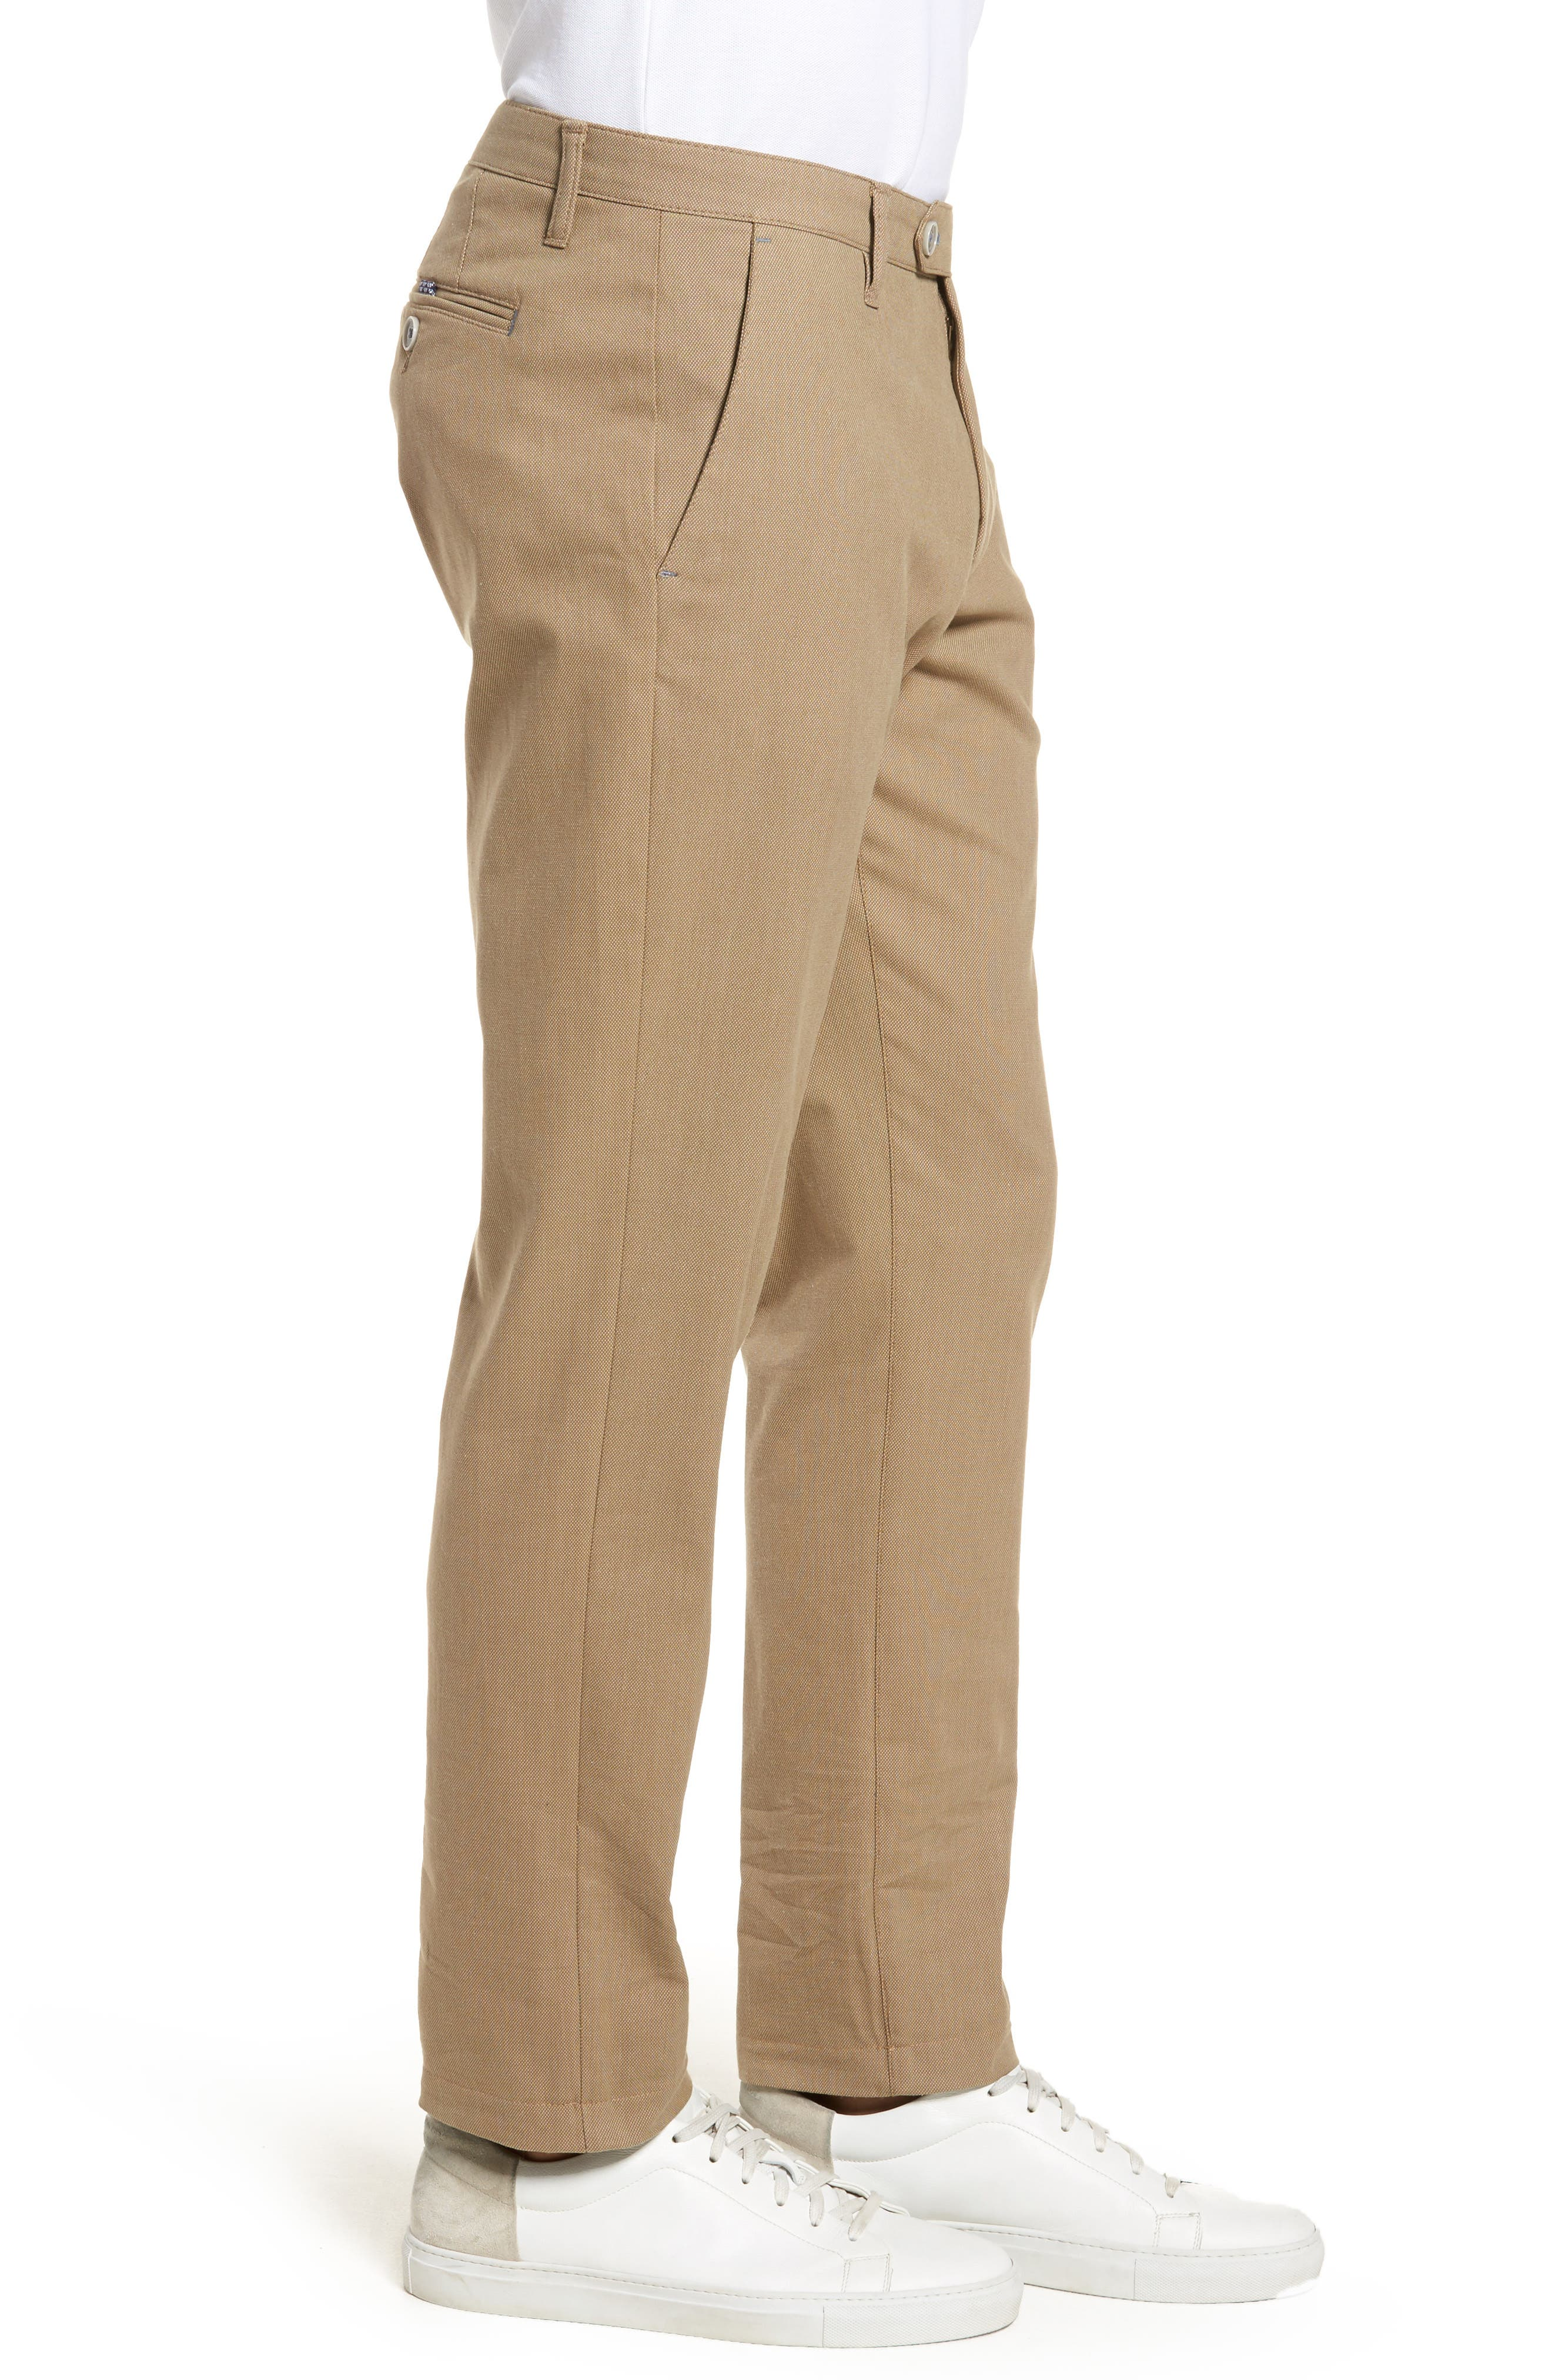 Holclas Classic Fit Chino Pants,                             Alternate thumbnail 3, color,                             250